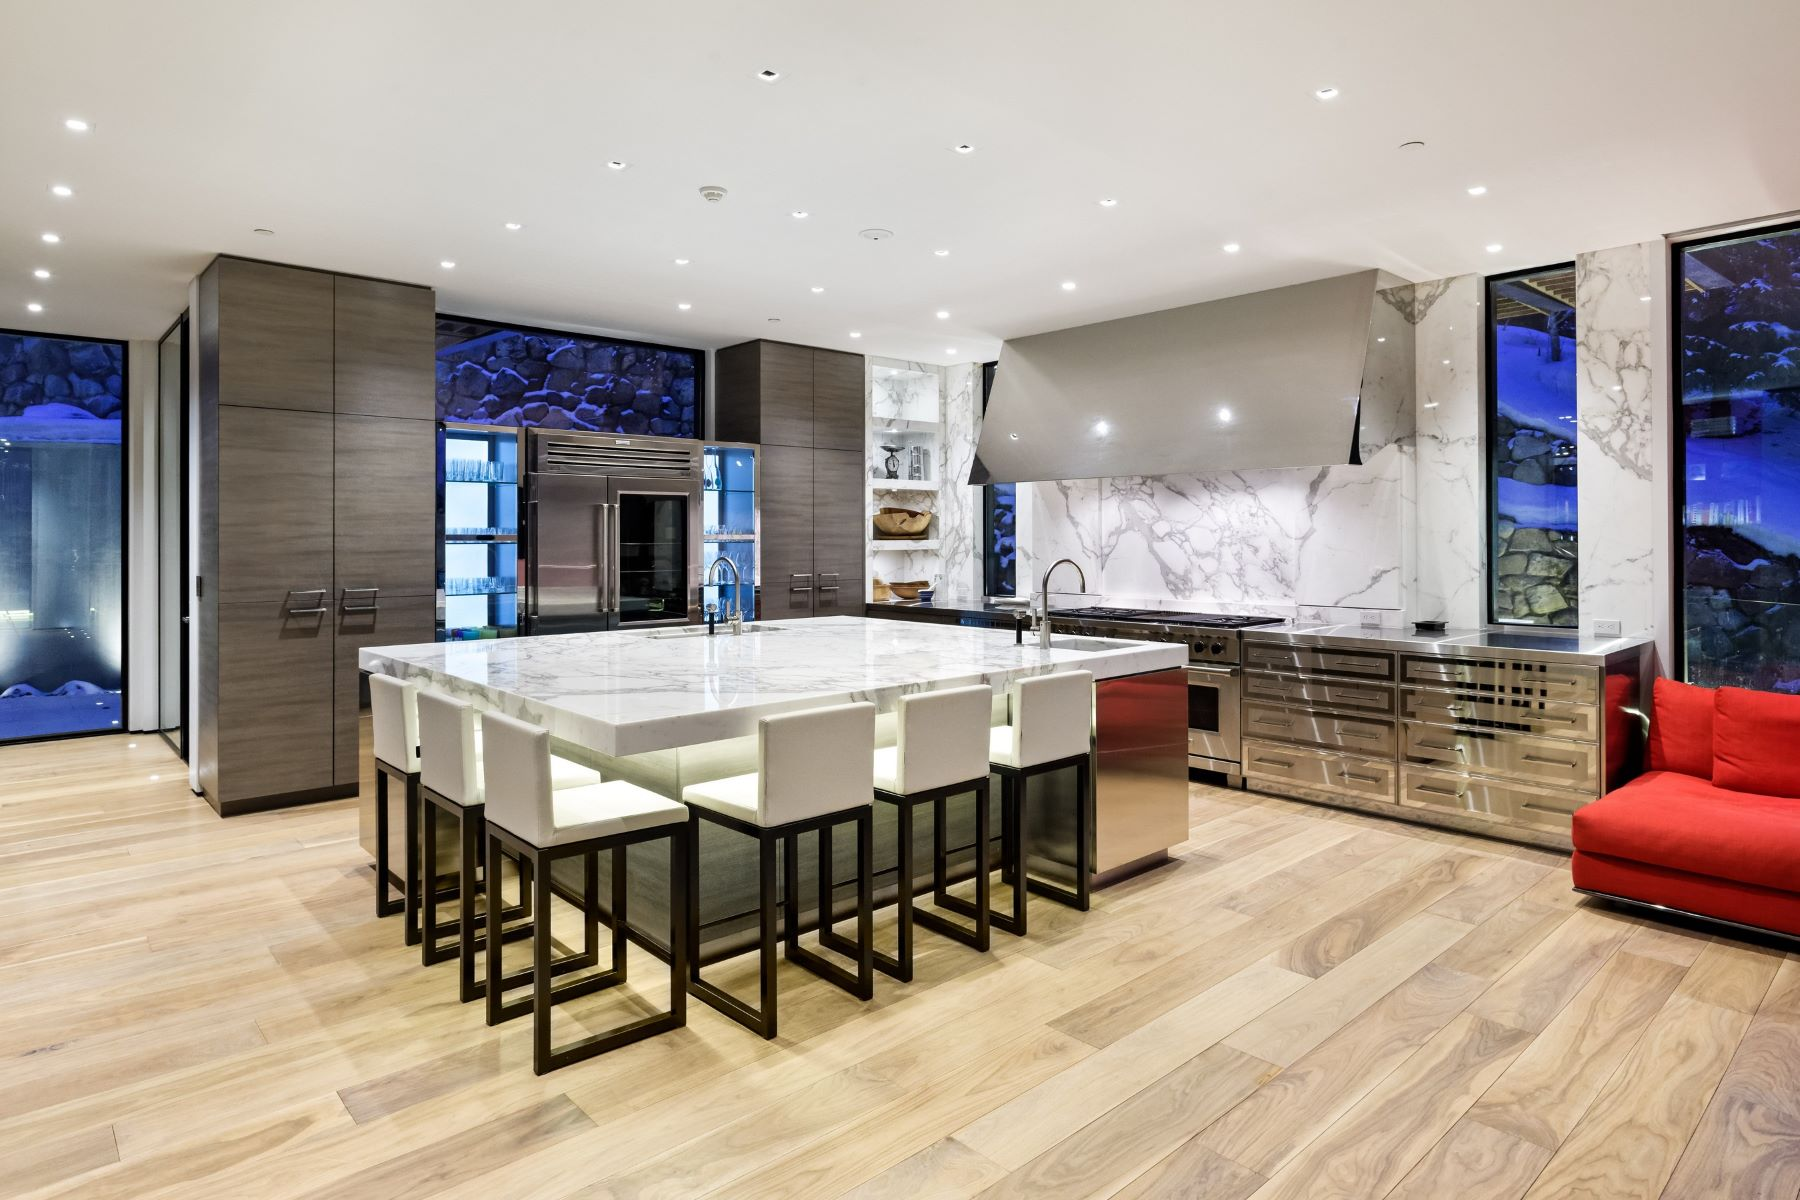 Additional photo for property listing at Magnificent Contemporary Home with Extraordinary Views on Willoughby Way 343 Willoughby Way Aspen, Colorado 81611 United States